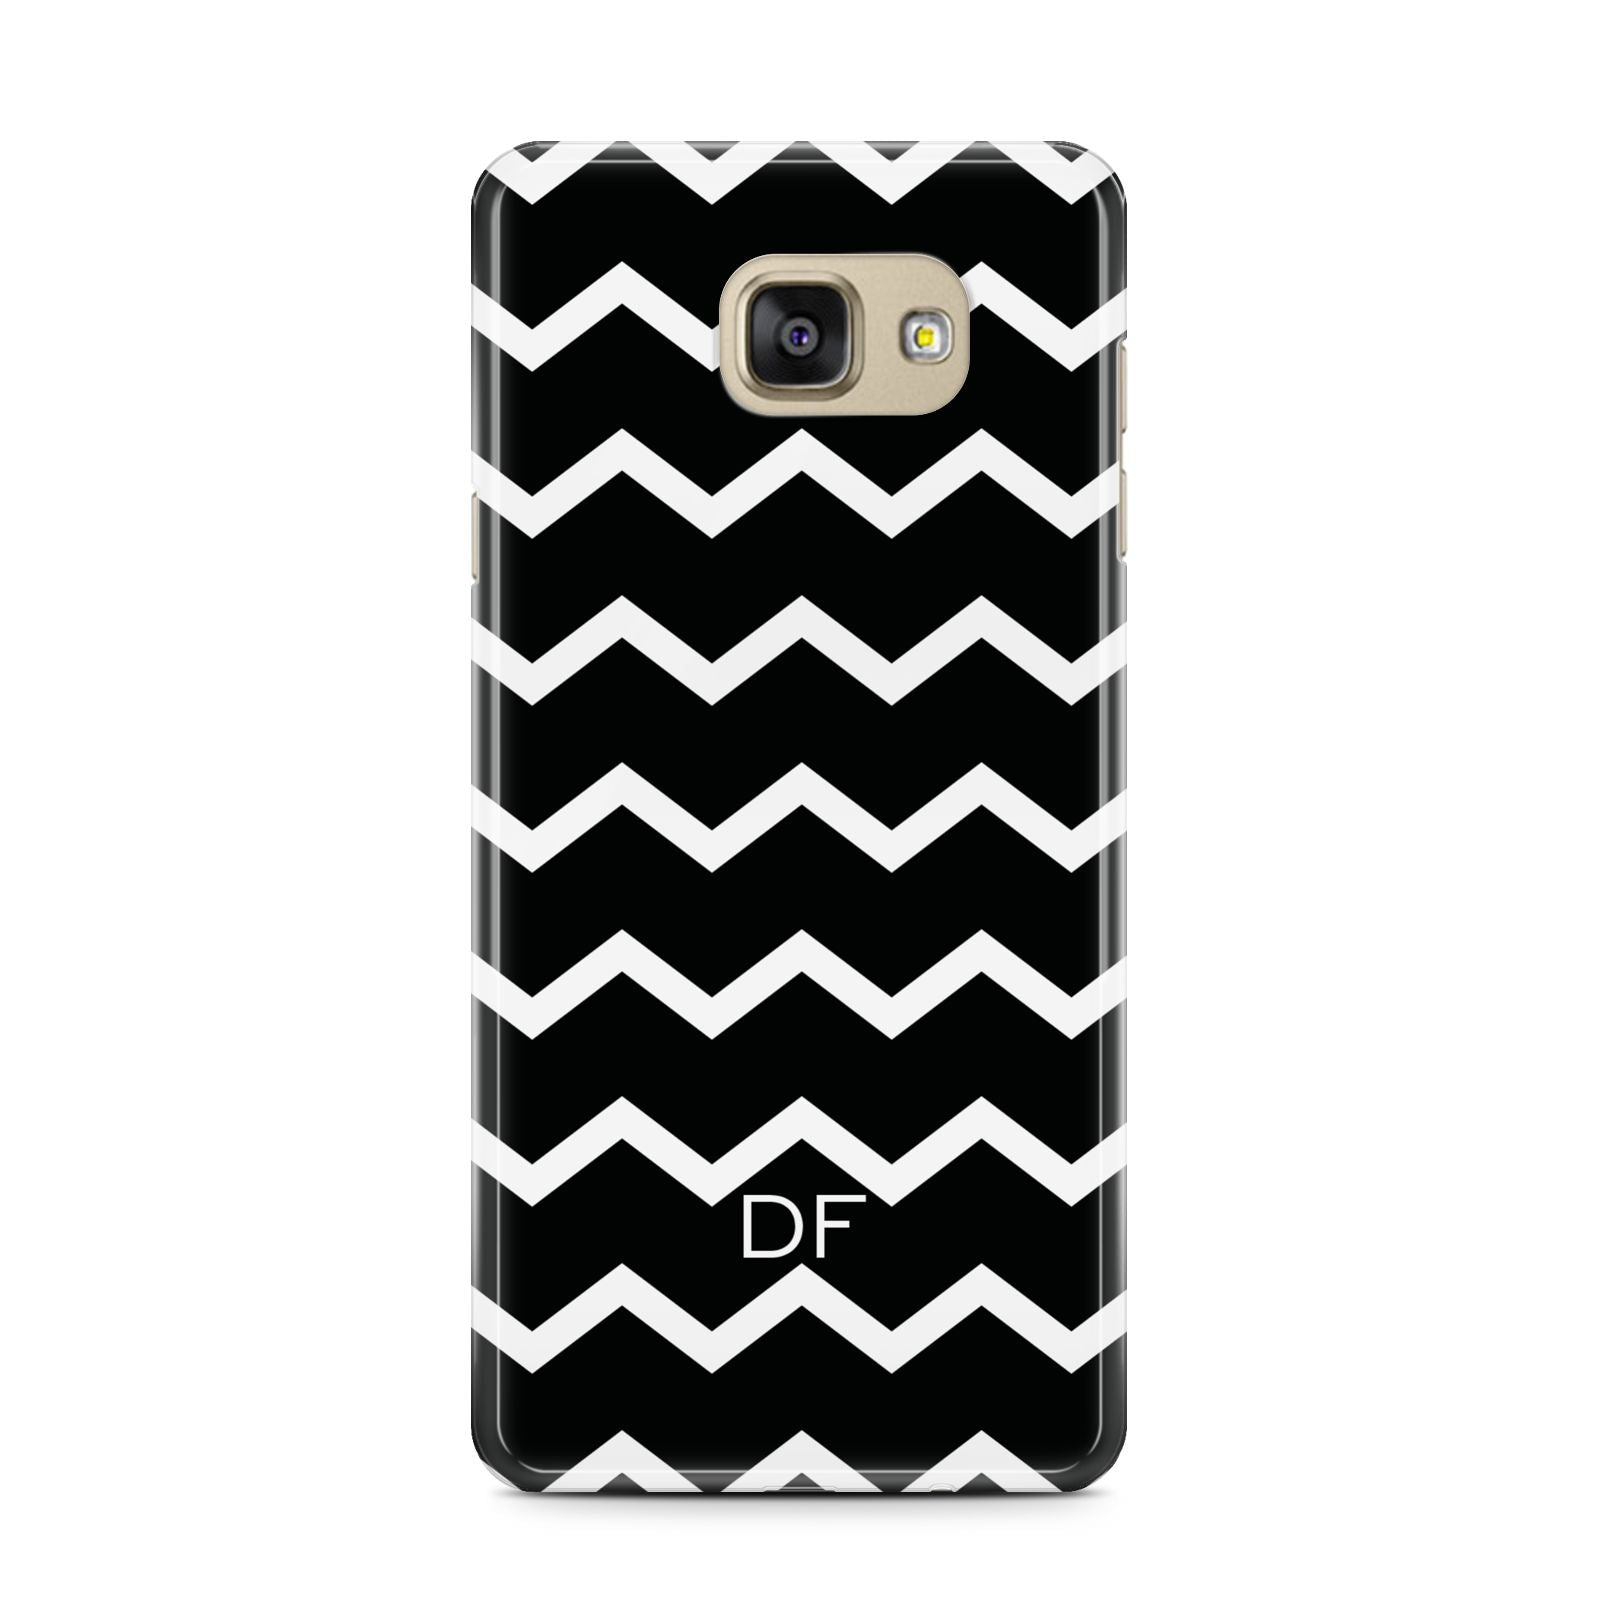 Personalised Chevron Black Samsung Galaxy A7 2016 Case on gold phone